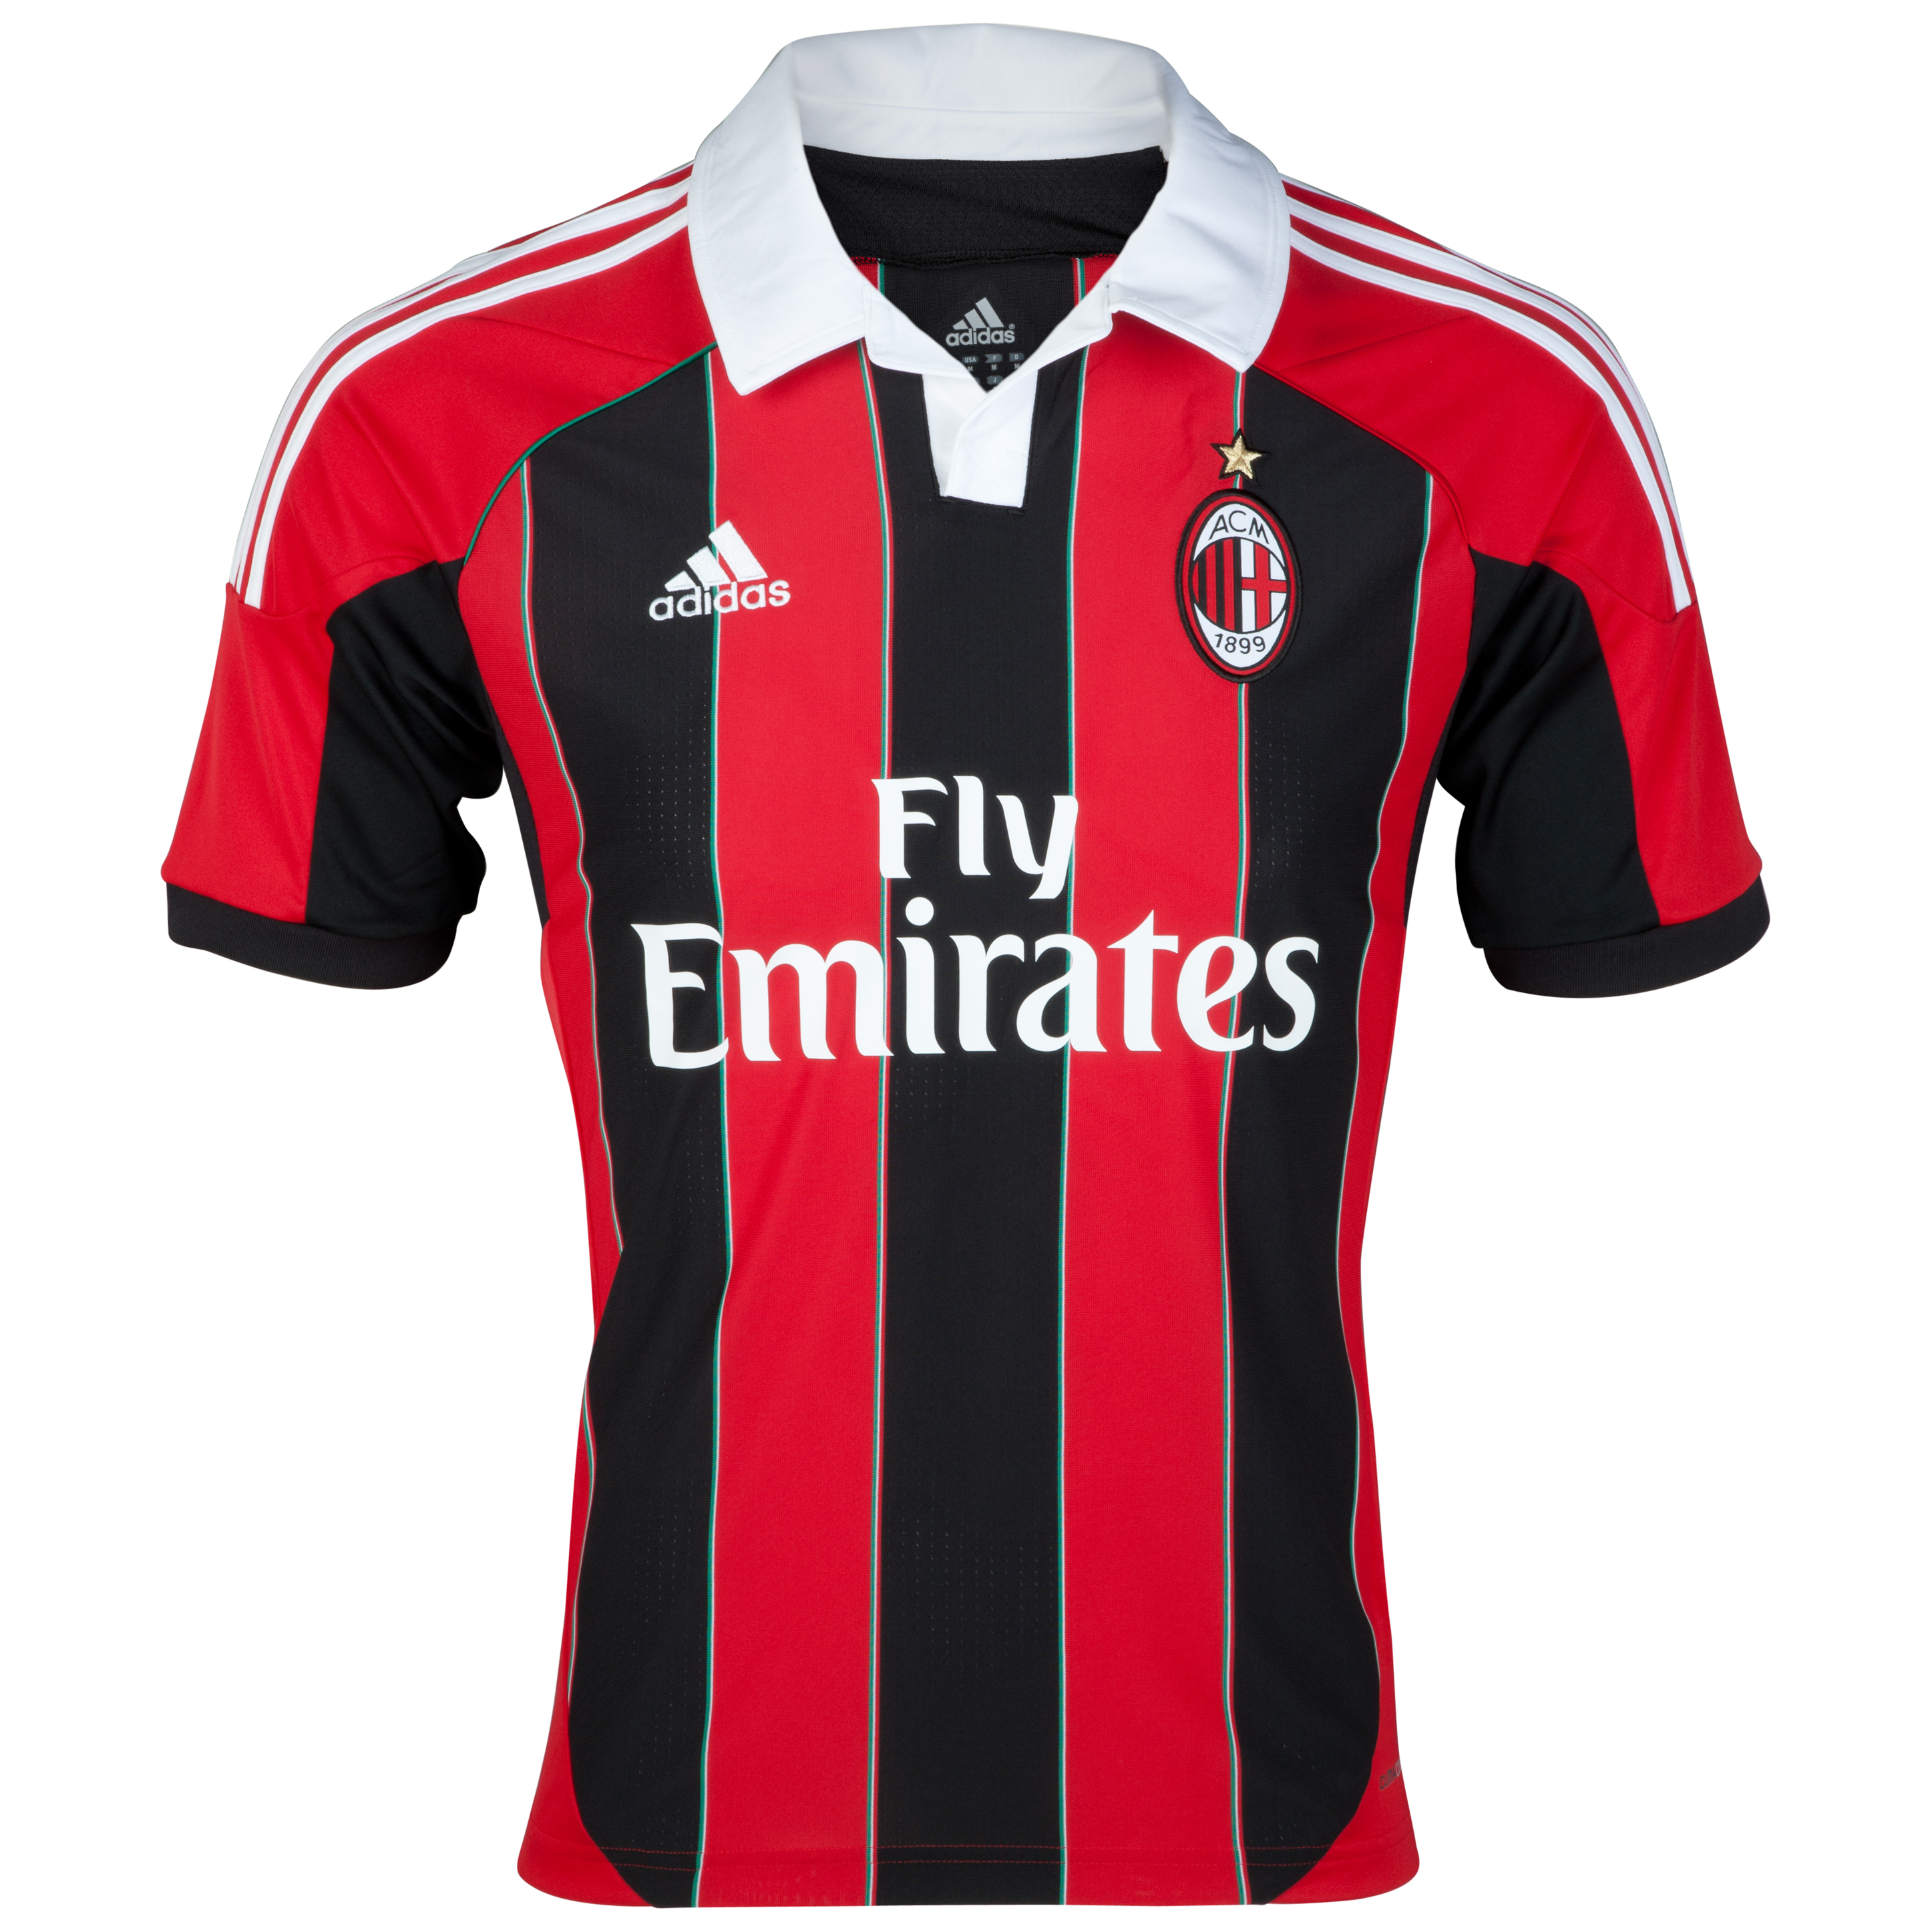 AC Milan Home/Away Short 2012/13